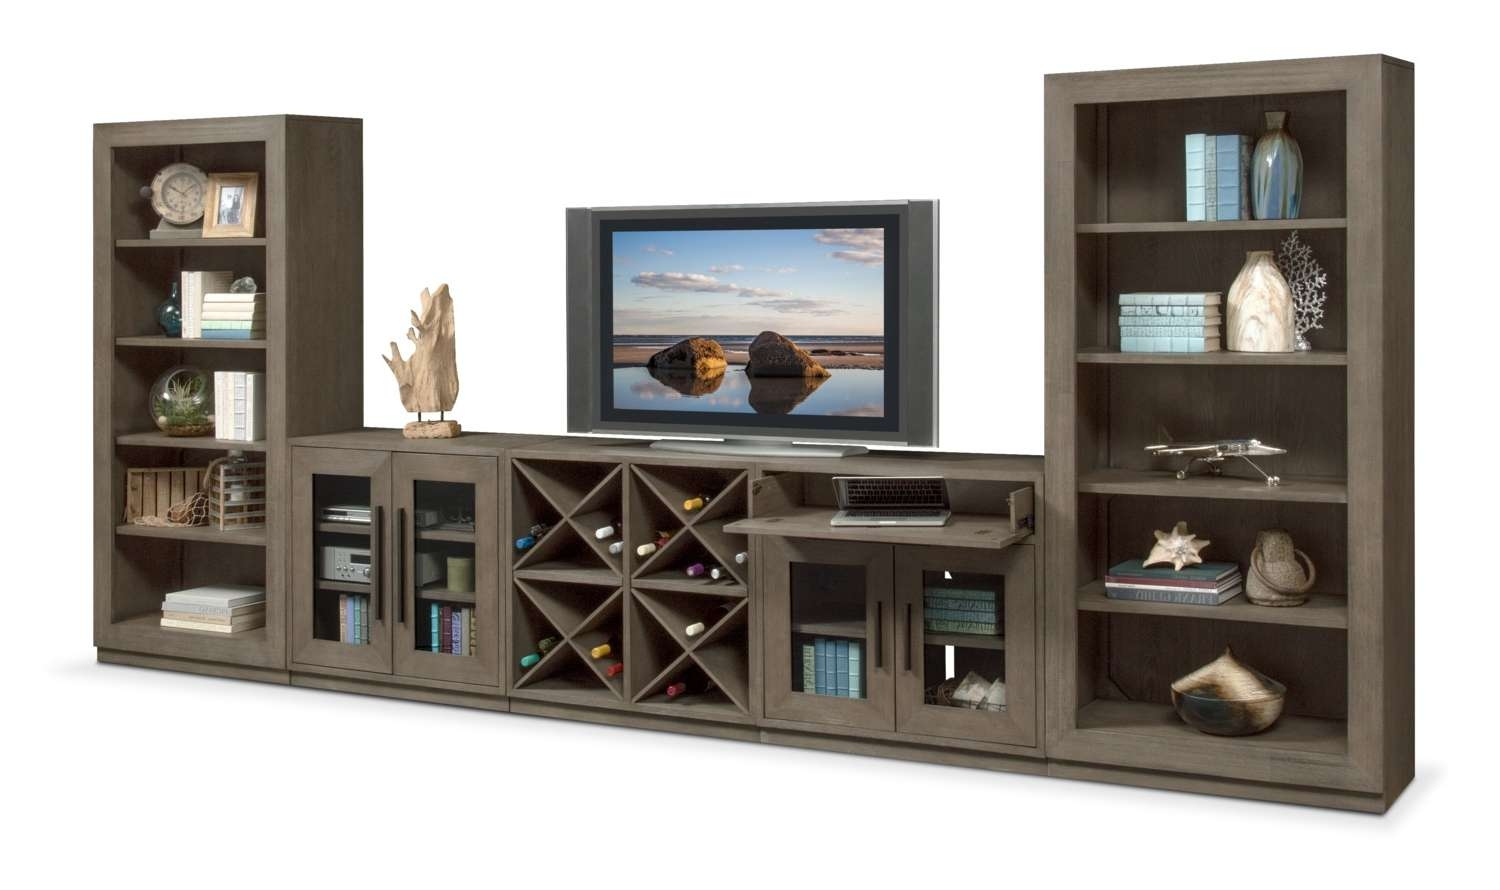 T V Stands & Media Centers | Value City Furniture And Mattresses With 24 Inch Deep Tv Stands (View 10 of 15)